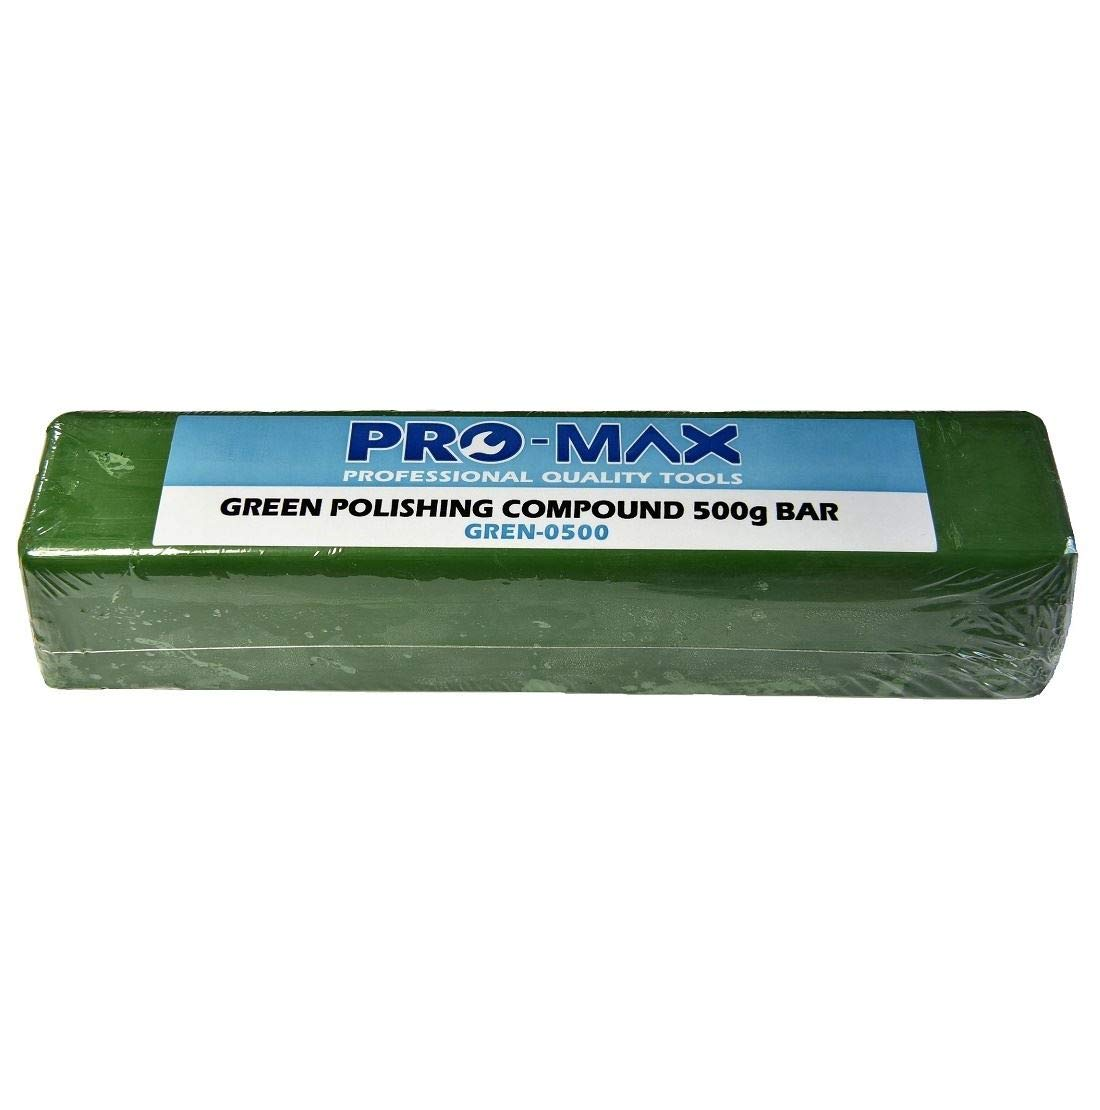 Pro-Max 500g Bar Green Steel & Stainless Steel Metal Polishing Buffing Compound Pro-Max Quality Tools & Accessories